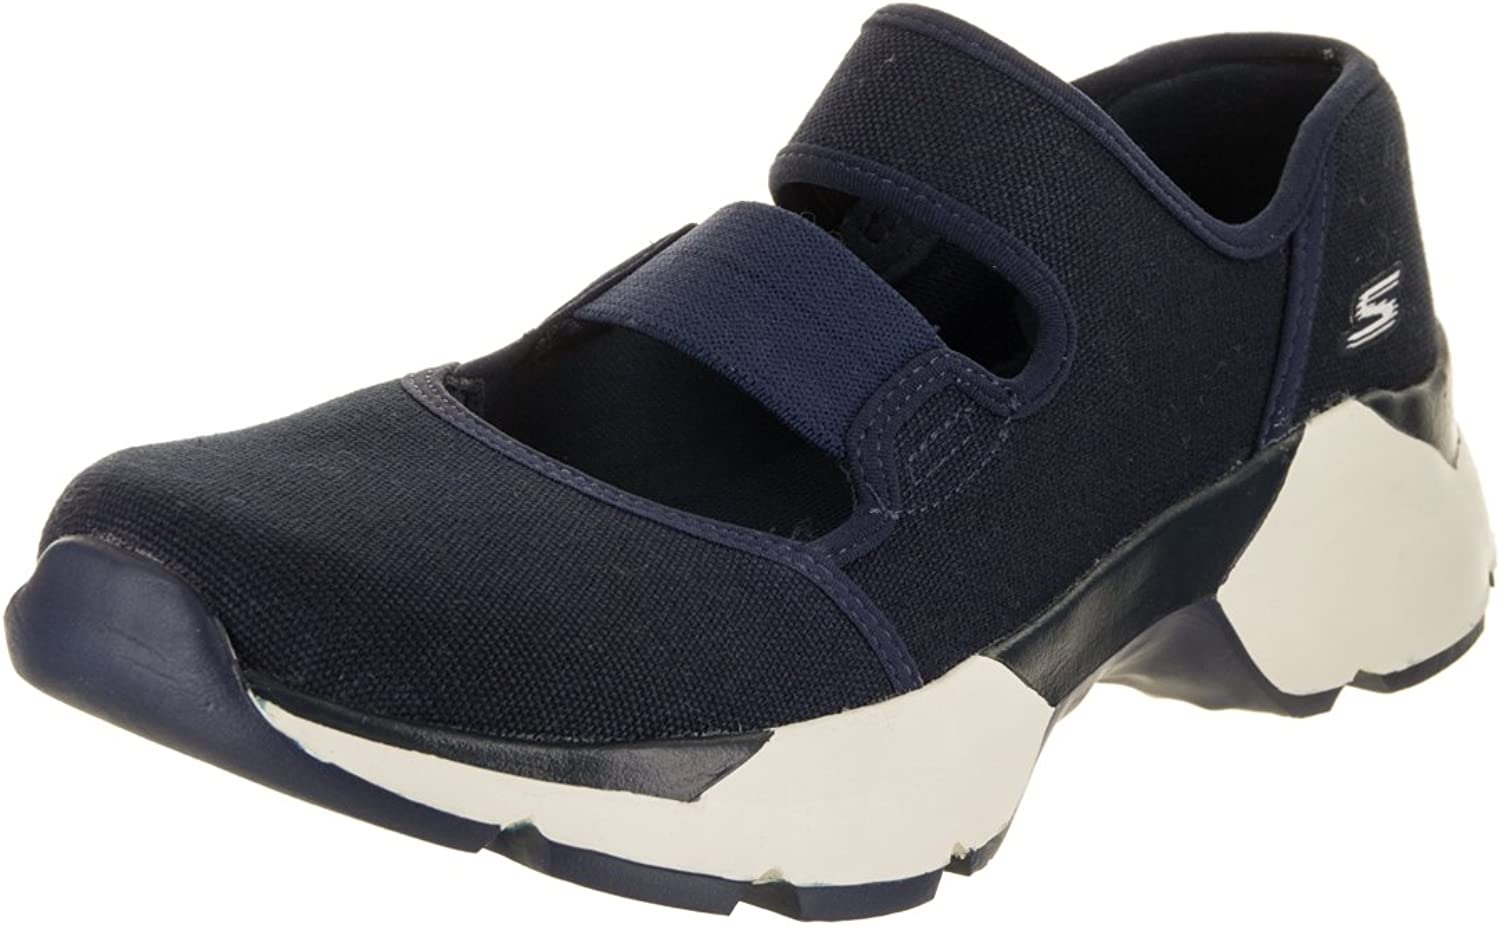 Skechers Women's Bora - Exhilarate Slip-On shoes